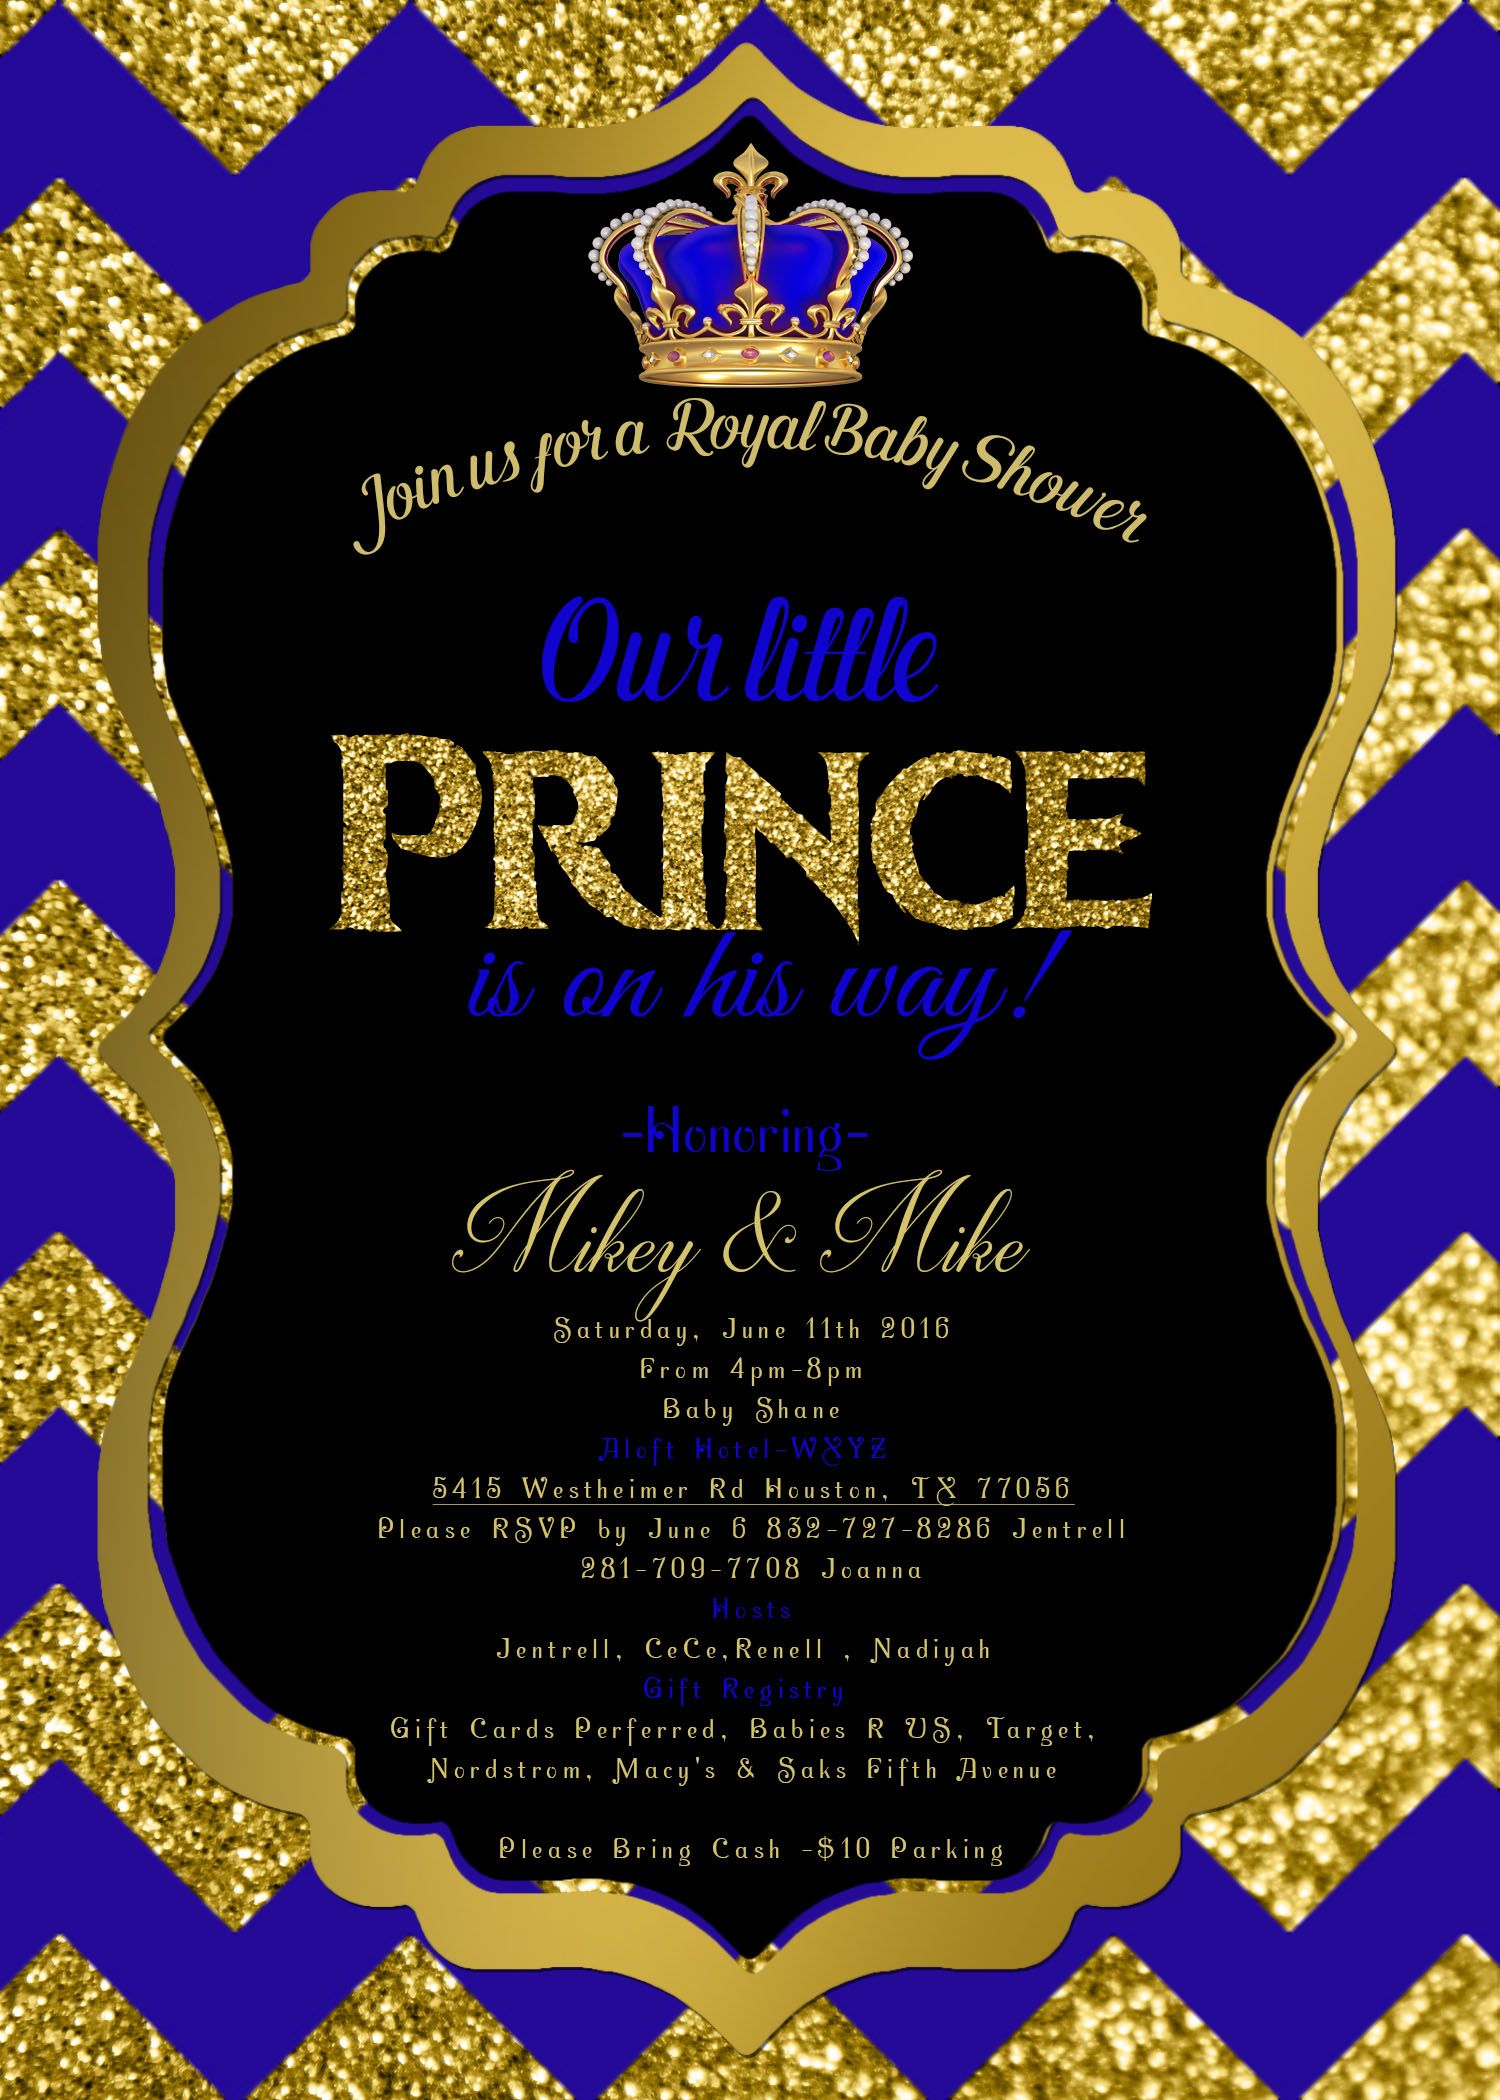 Royal Baby shower invitation Royal prince Invite | bby shower ...